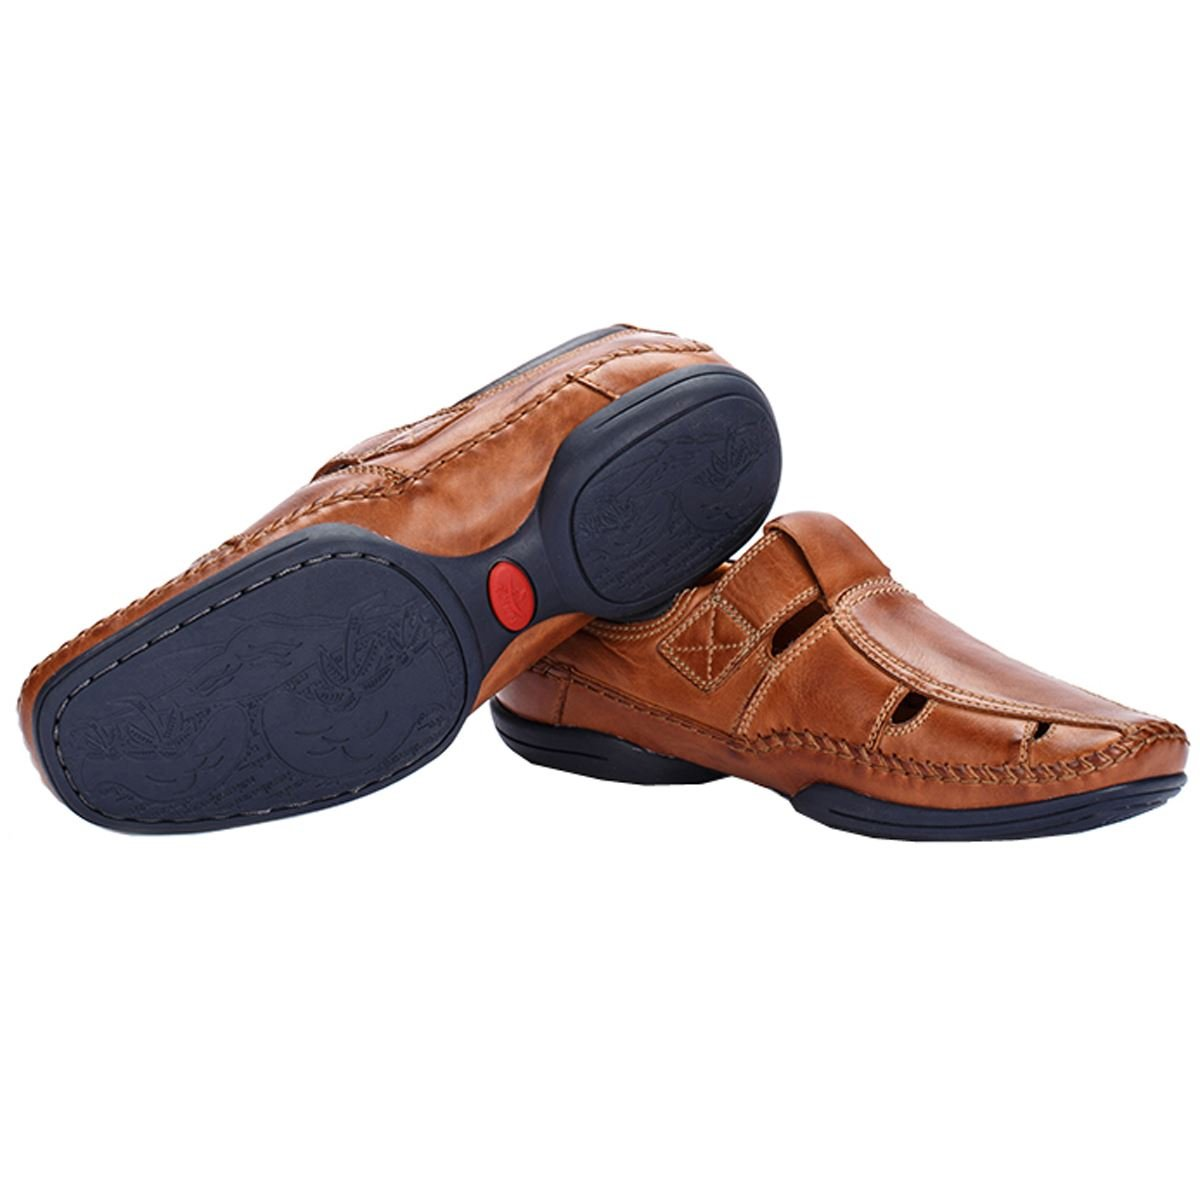 Pikolinos Hombre Puerto Rico Leather Leather Leather Zapatos 413492